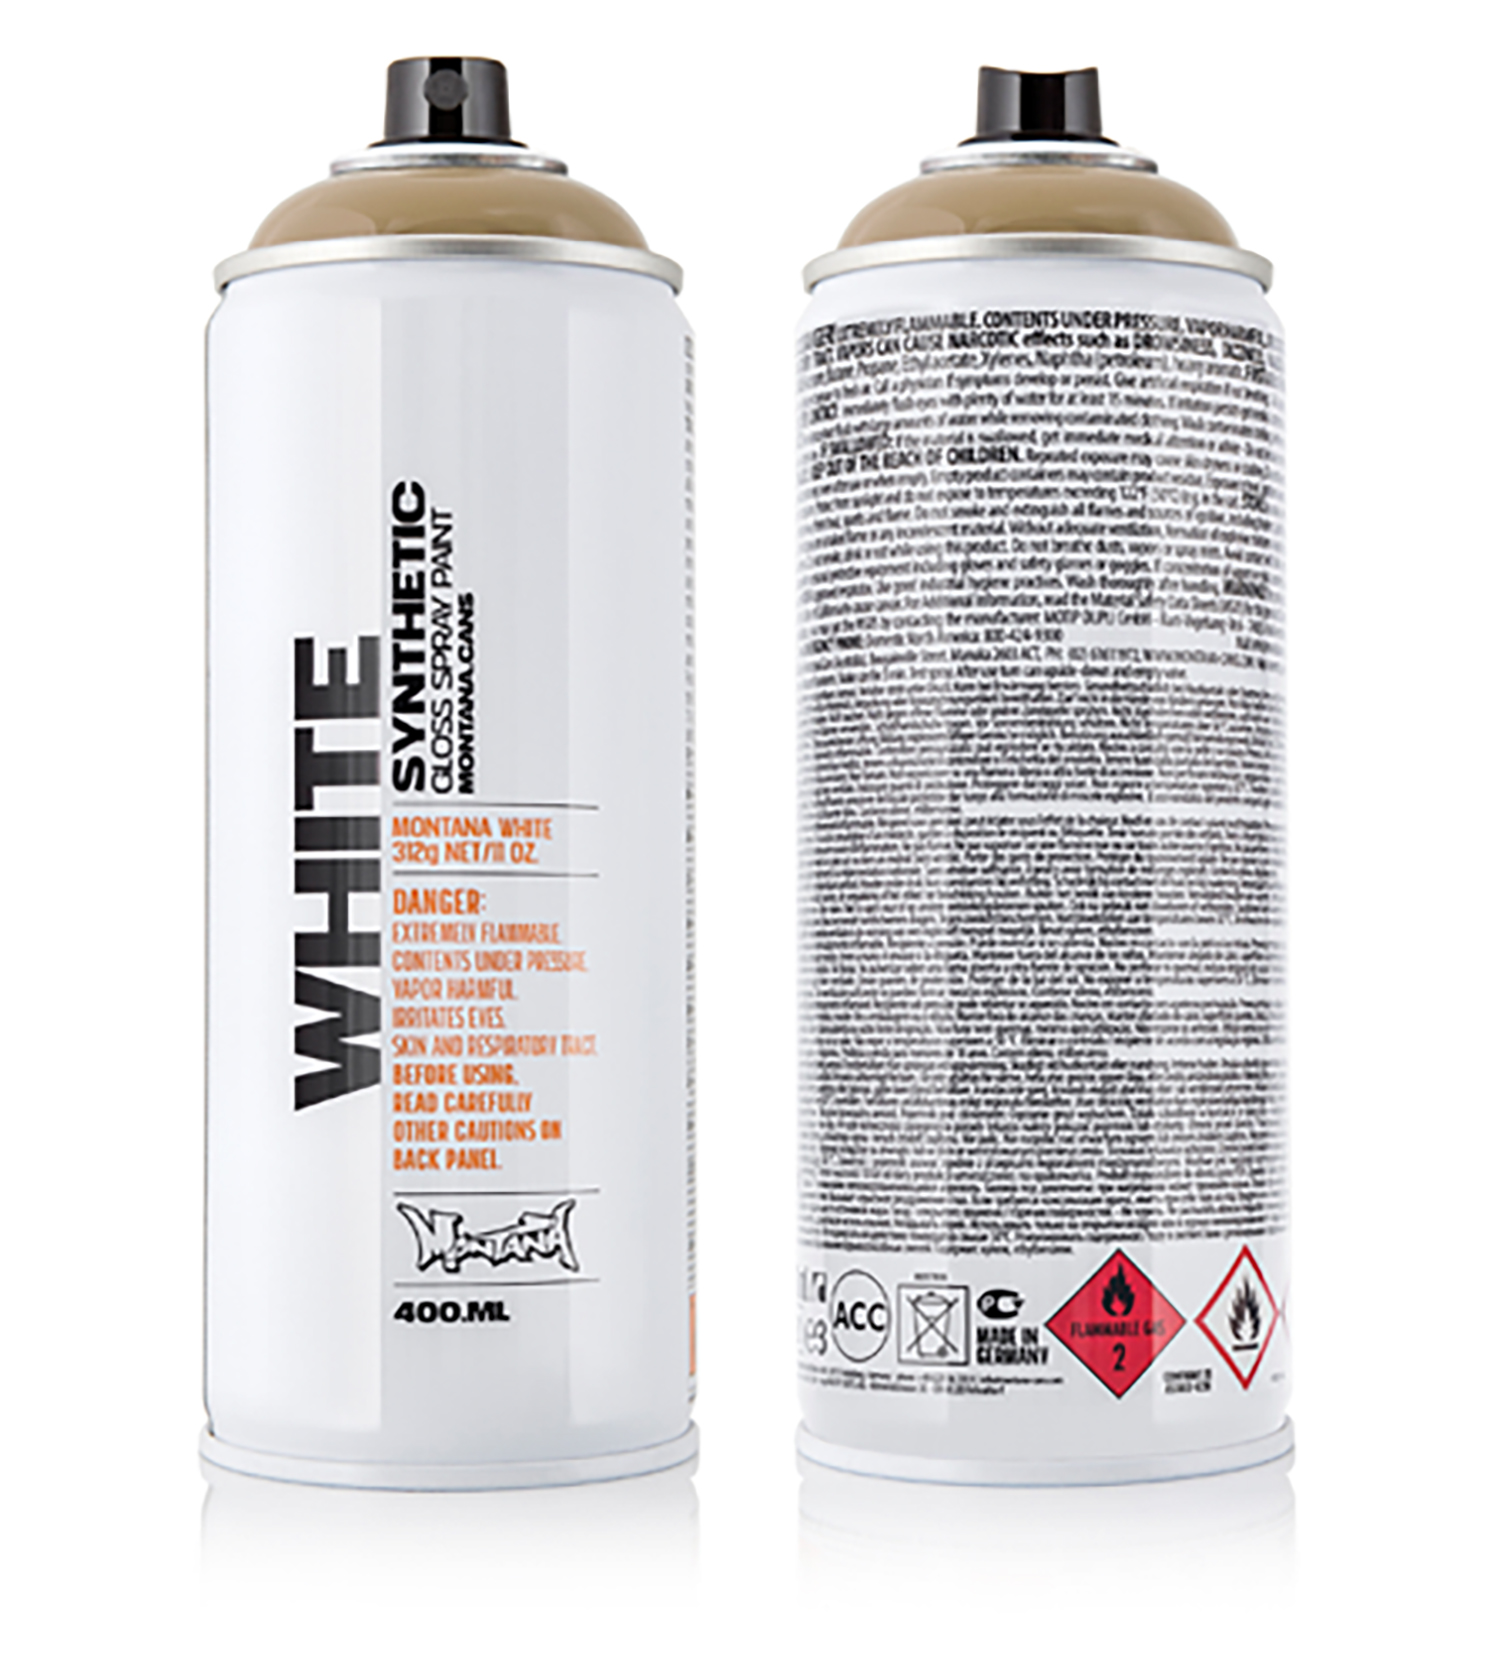 MONTANA-WHITE-SPRAY-400ML-8020